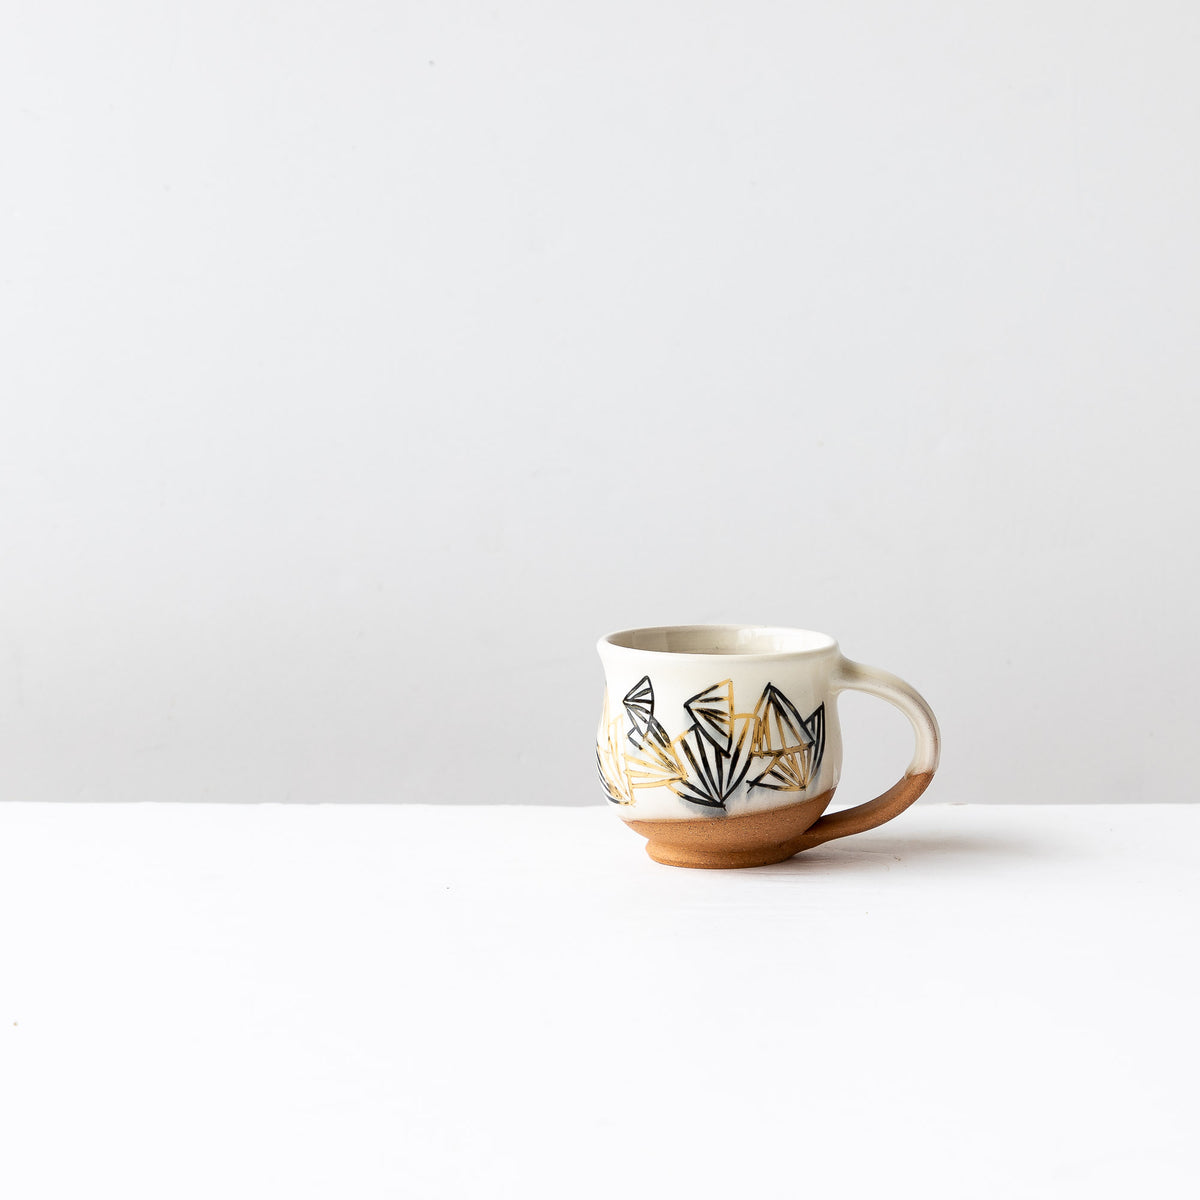 Black & Gold Pattern - Handmade Mishima Espresso Cup With Folding Fan Pattern - Sold by Chic & Basta